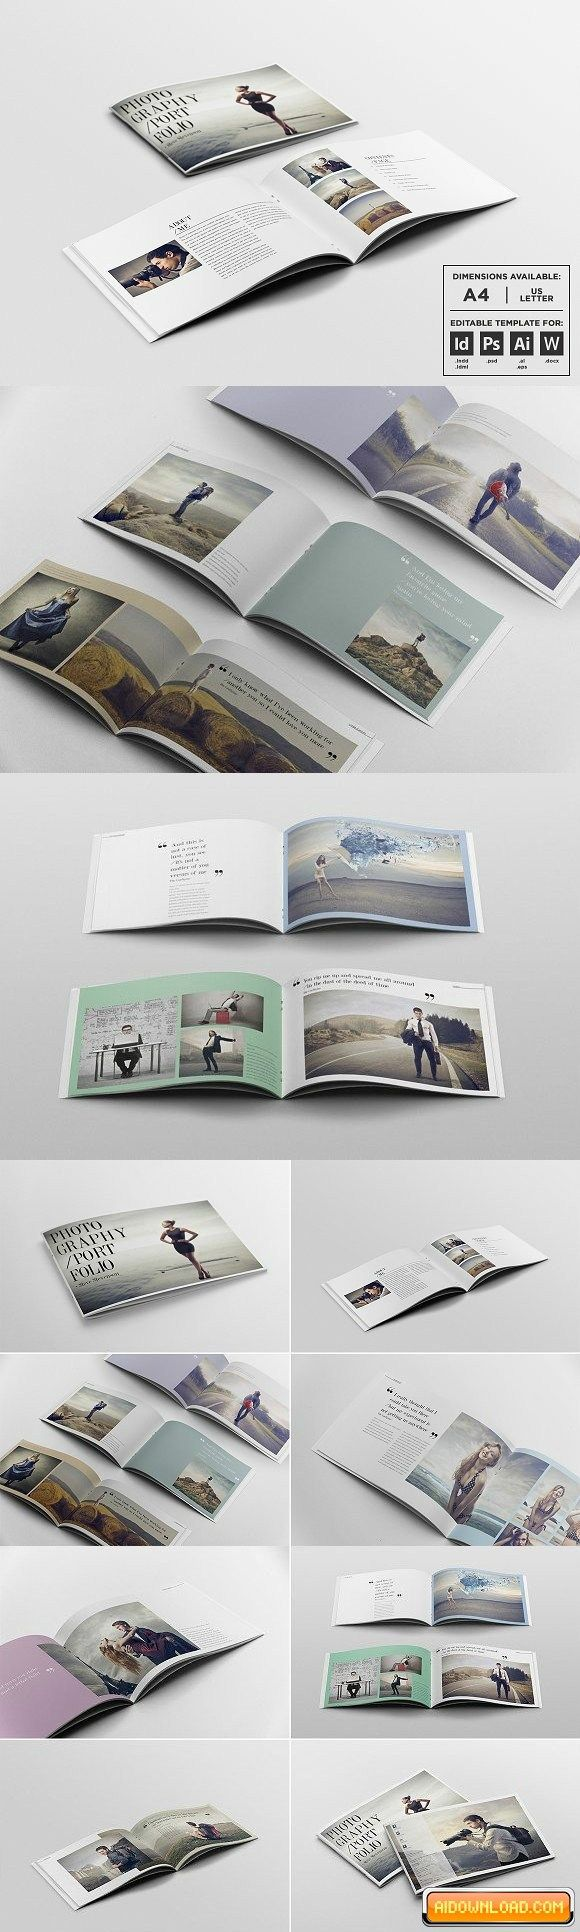 Photography Portfolio Template Free Download | Free Graphic ...